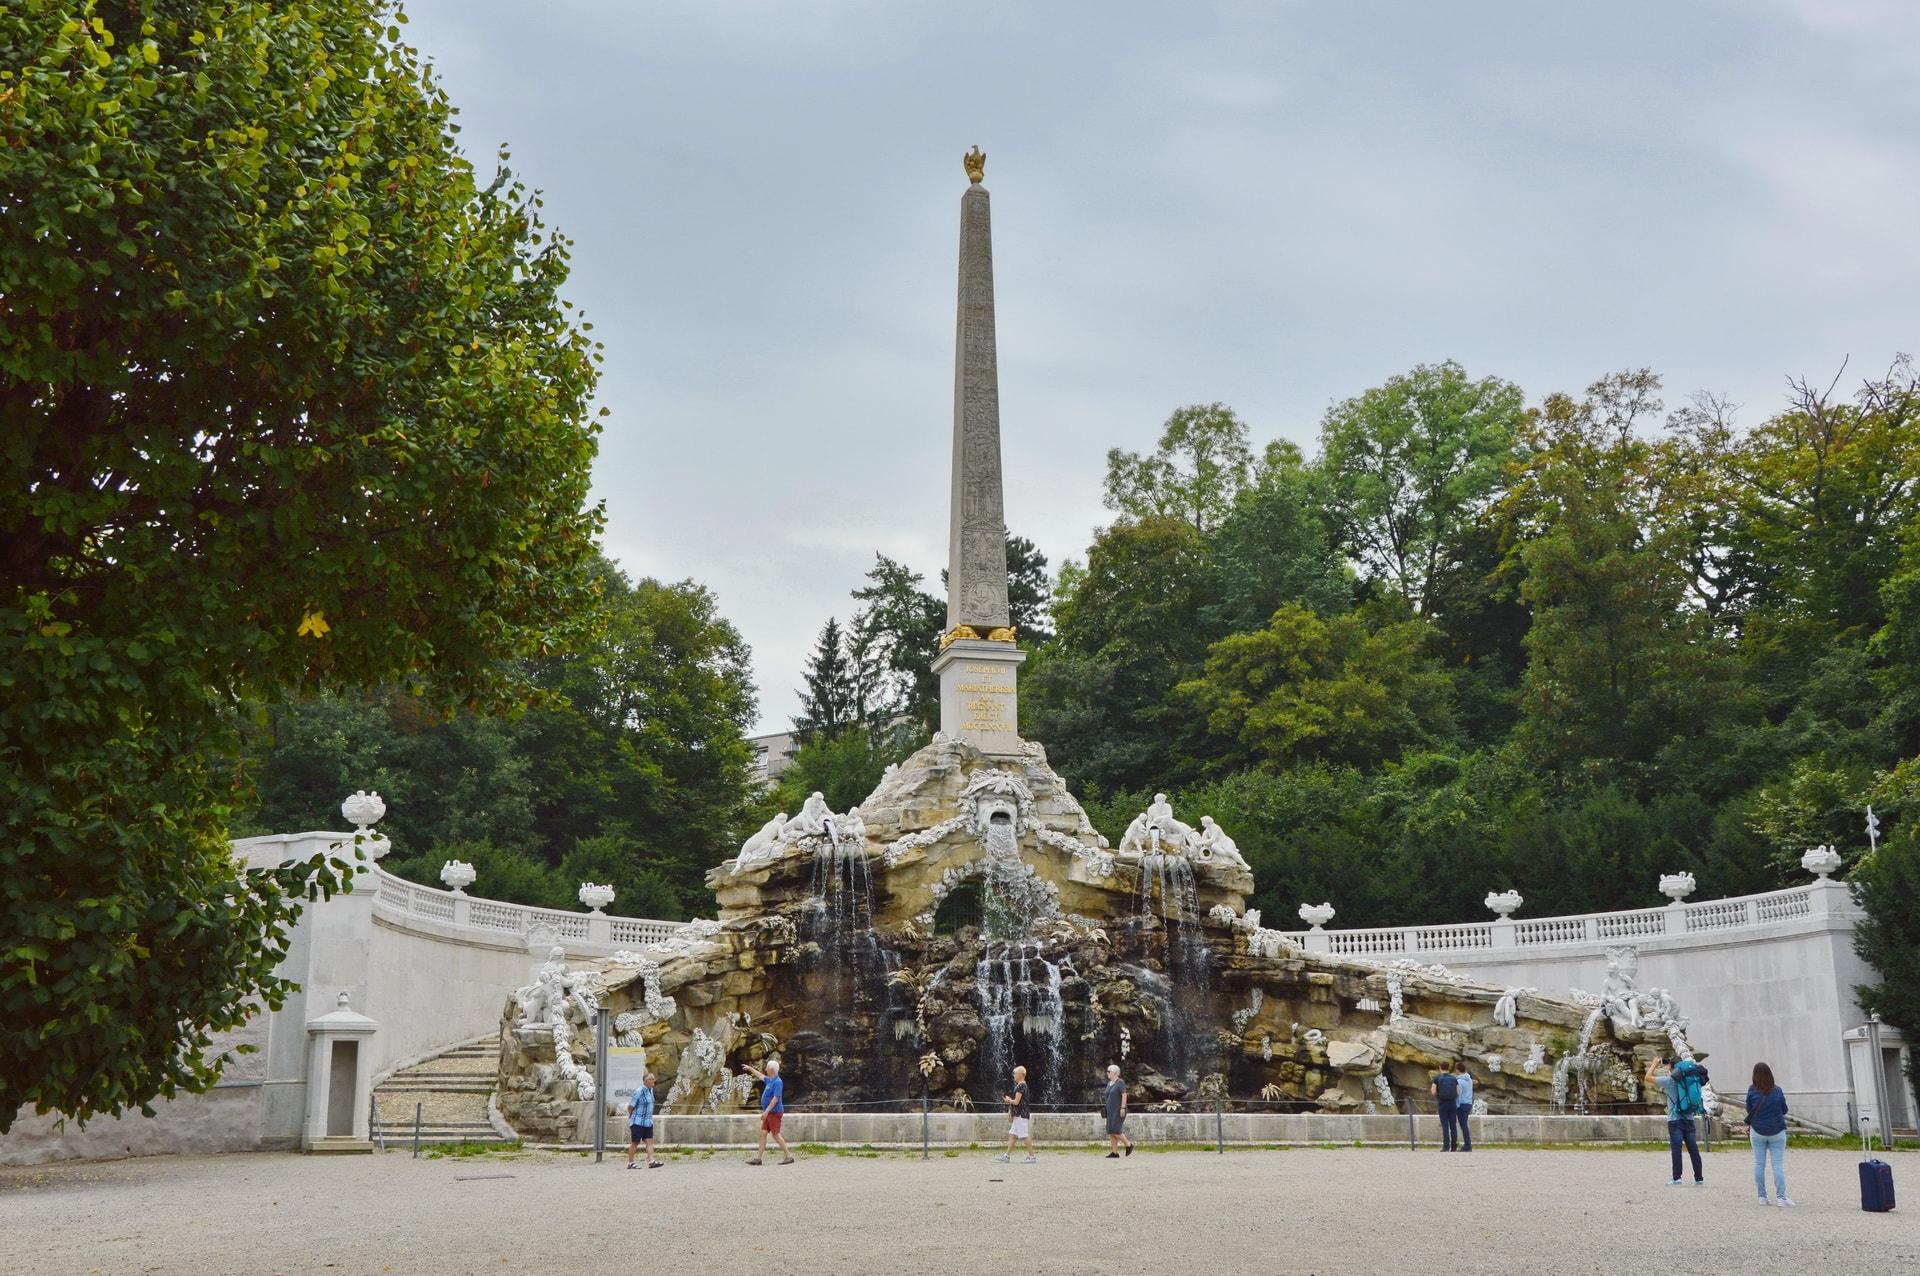 Obelisk Fountain in the gardens of the Schönbrunn Palace